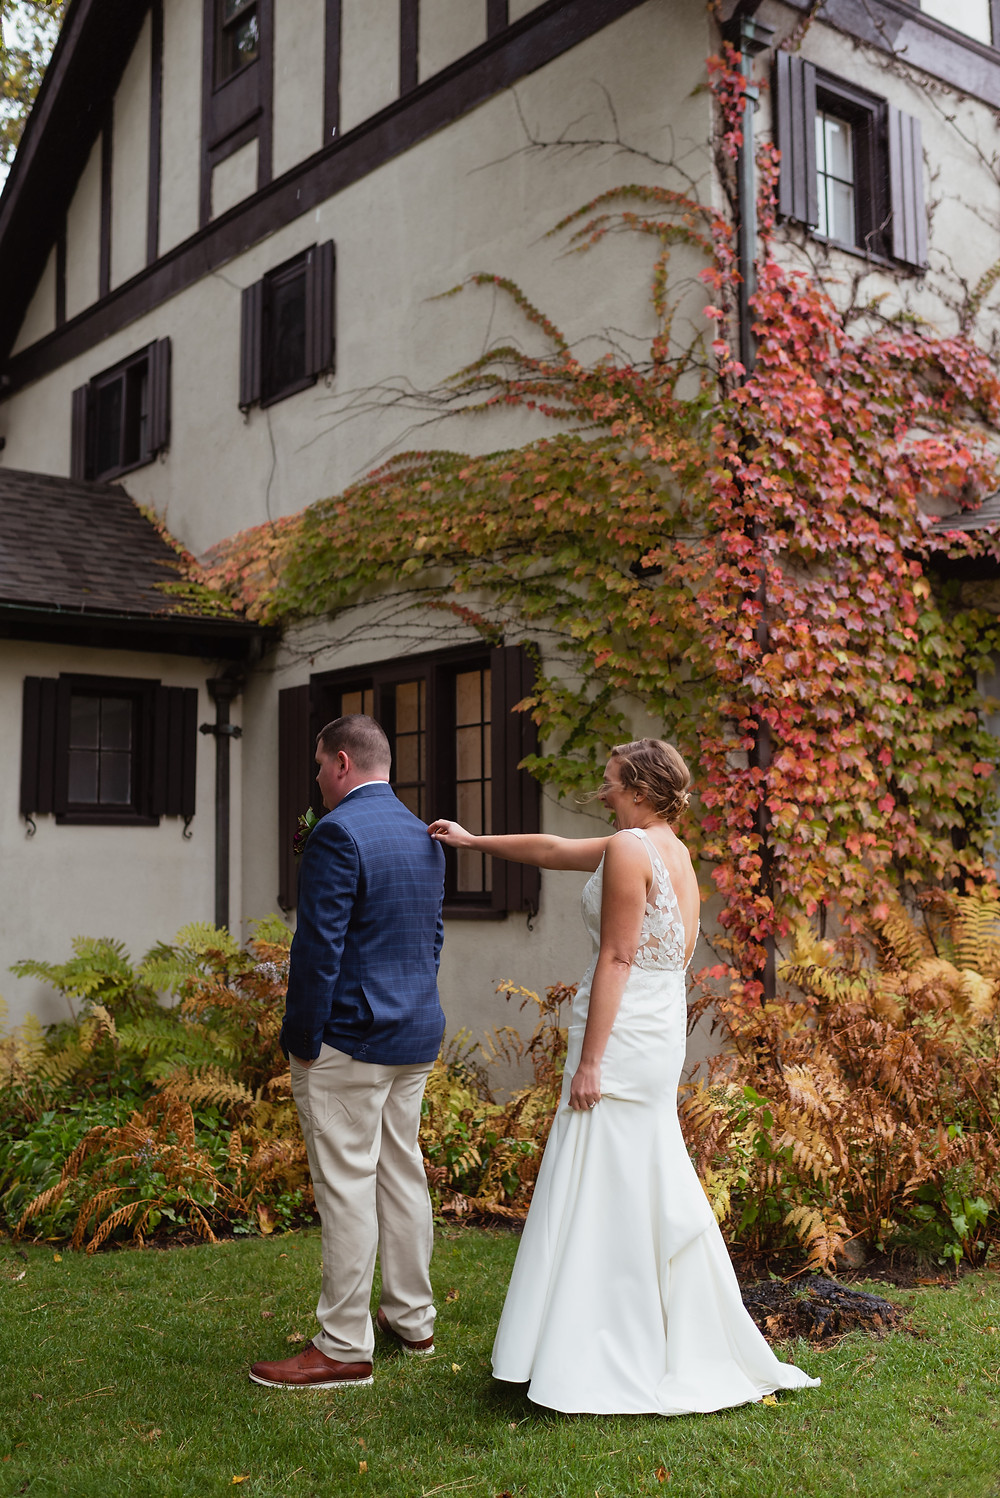 bride tapping groom on shoulder during first look outside Ivy Manor Inn in Bar Harbor, ME